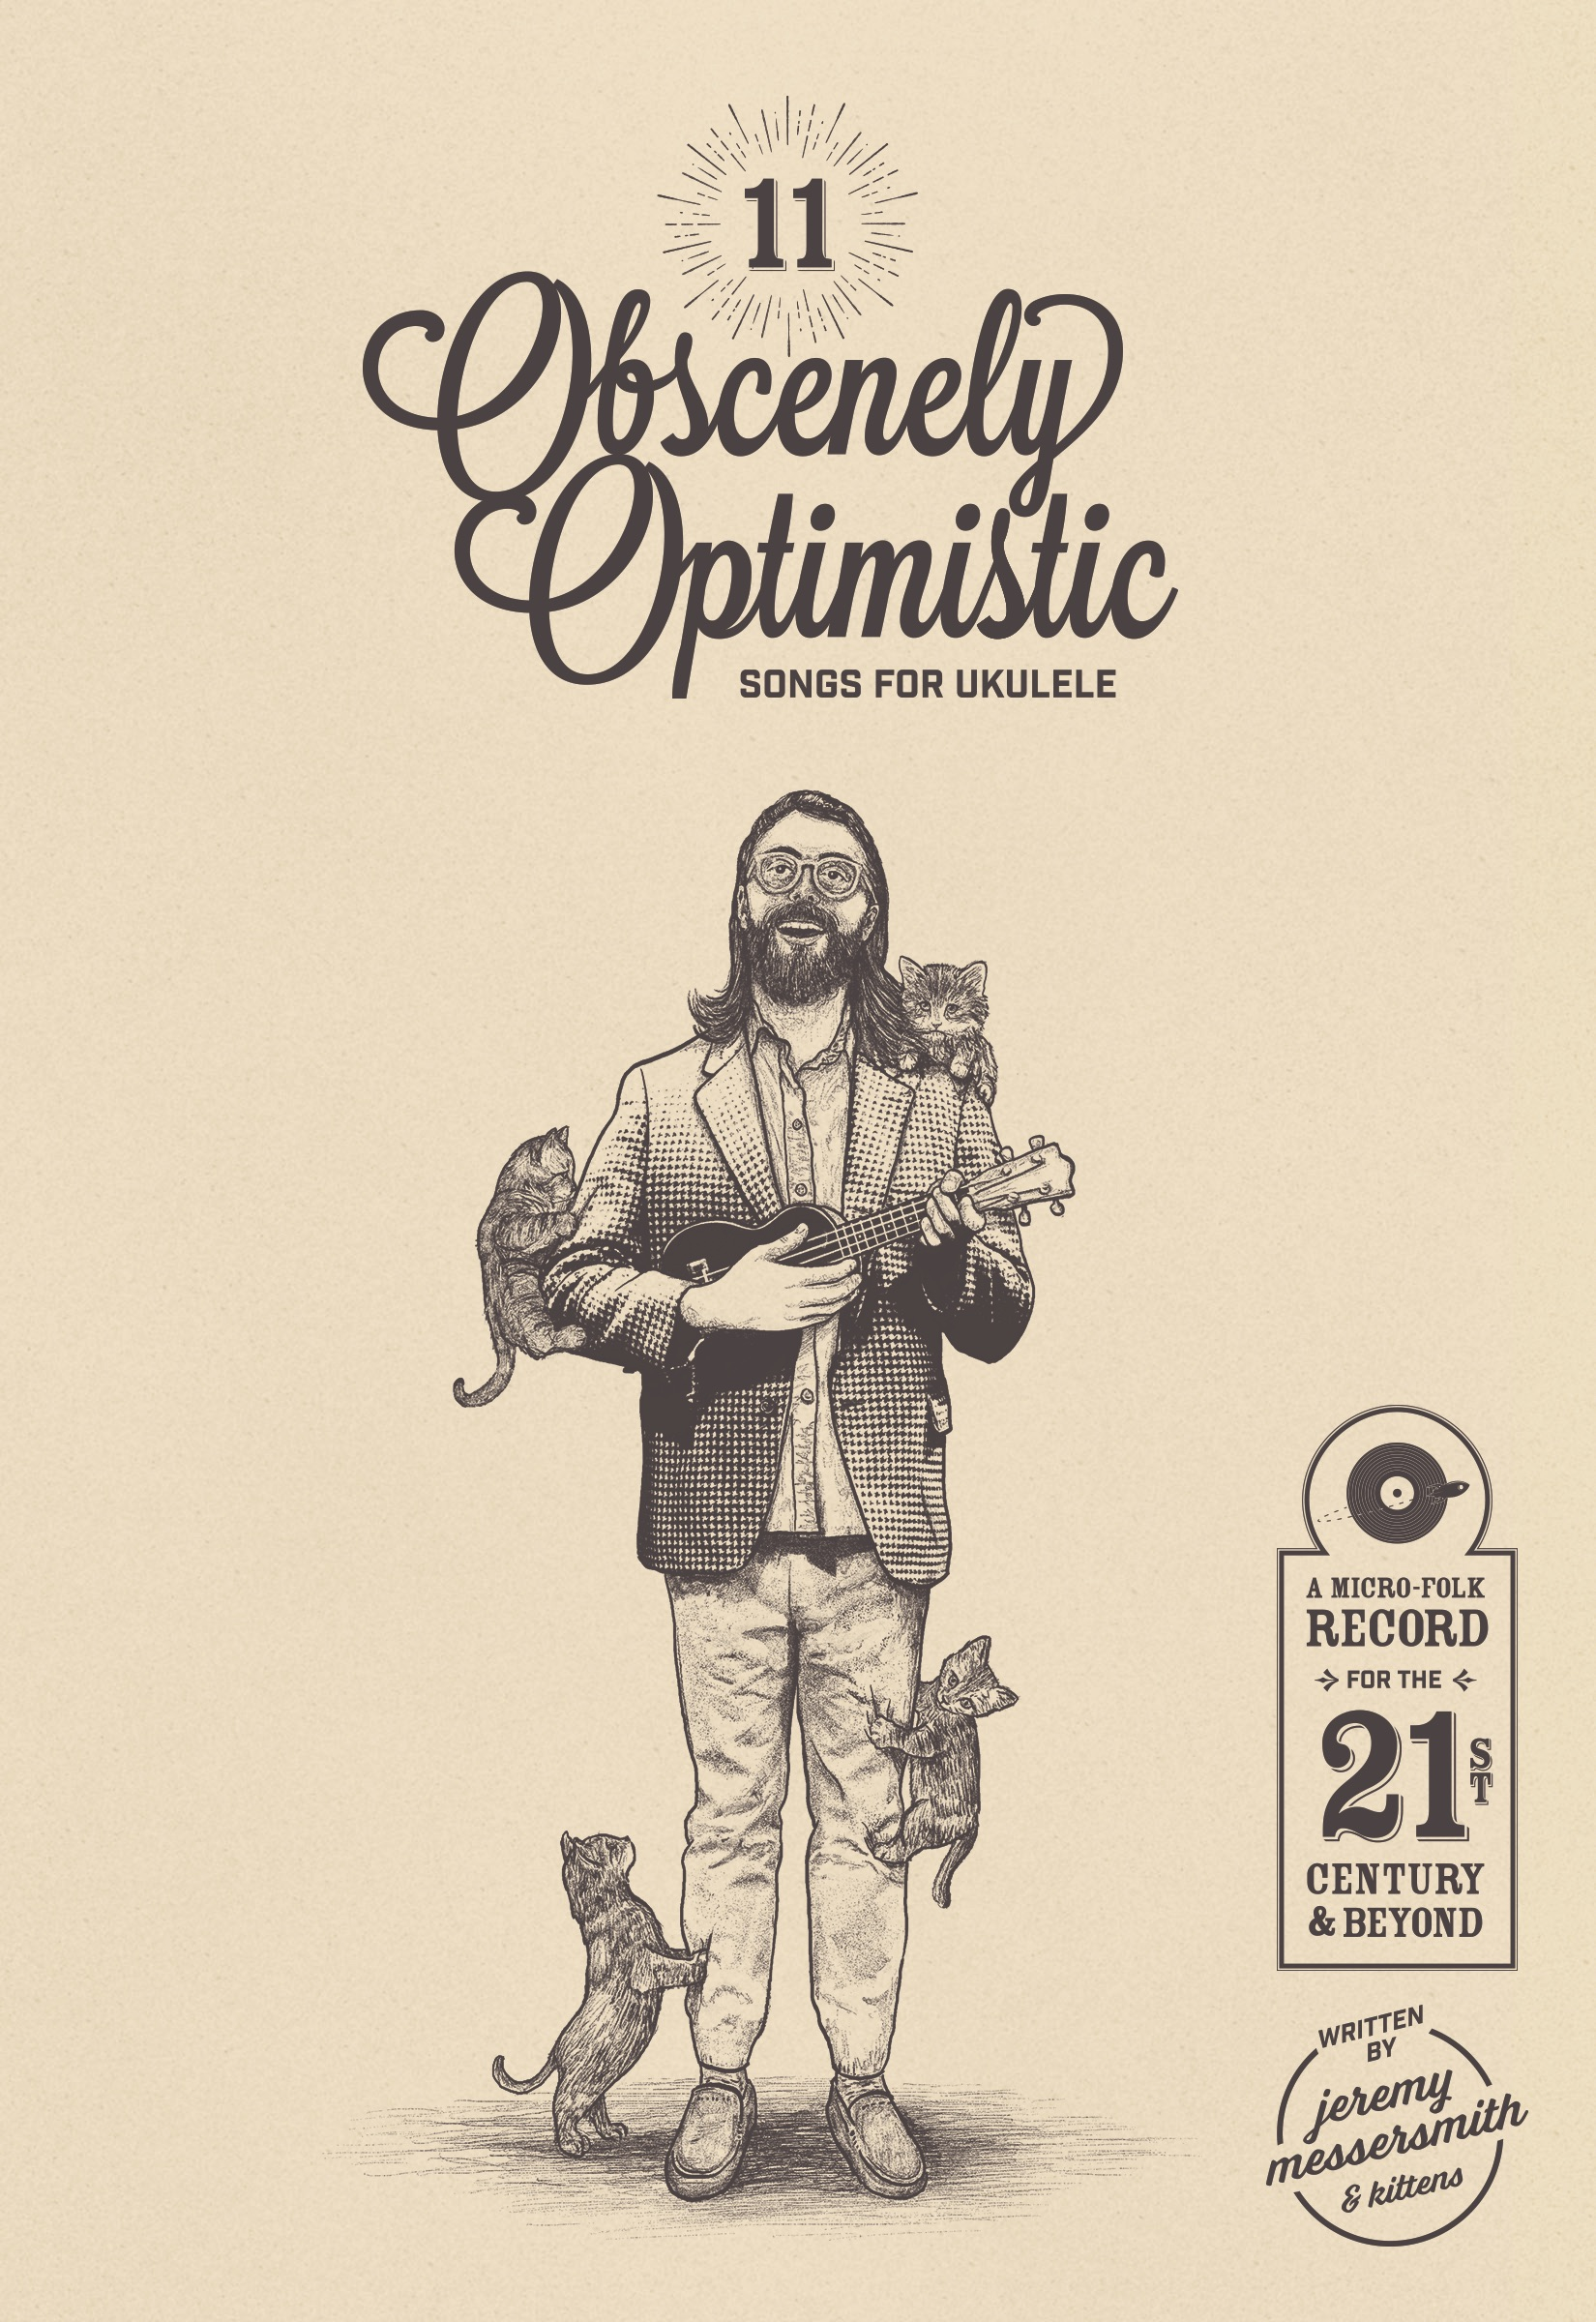 11 Obscenely Optimistic Songs For Ukulele: A Micro-Folk Record For the 21st Century And Beyond - Listen to the album on all digital outlets here: .Download the songbook as a free pdf by clicking on the image right over there «««